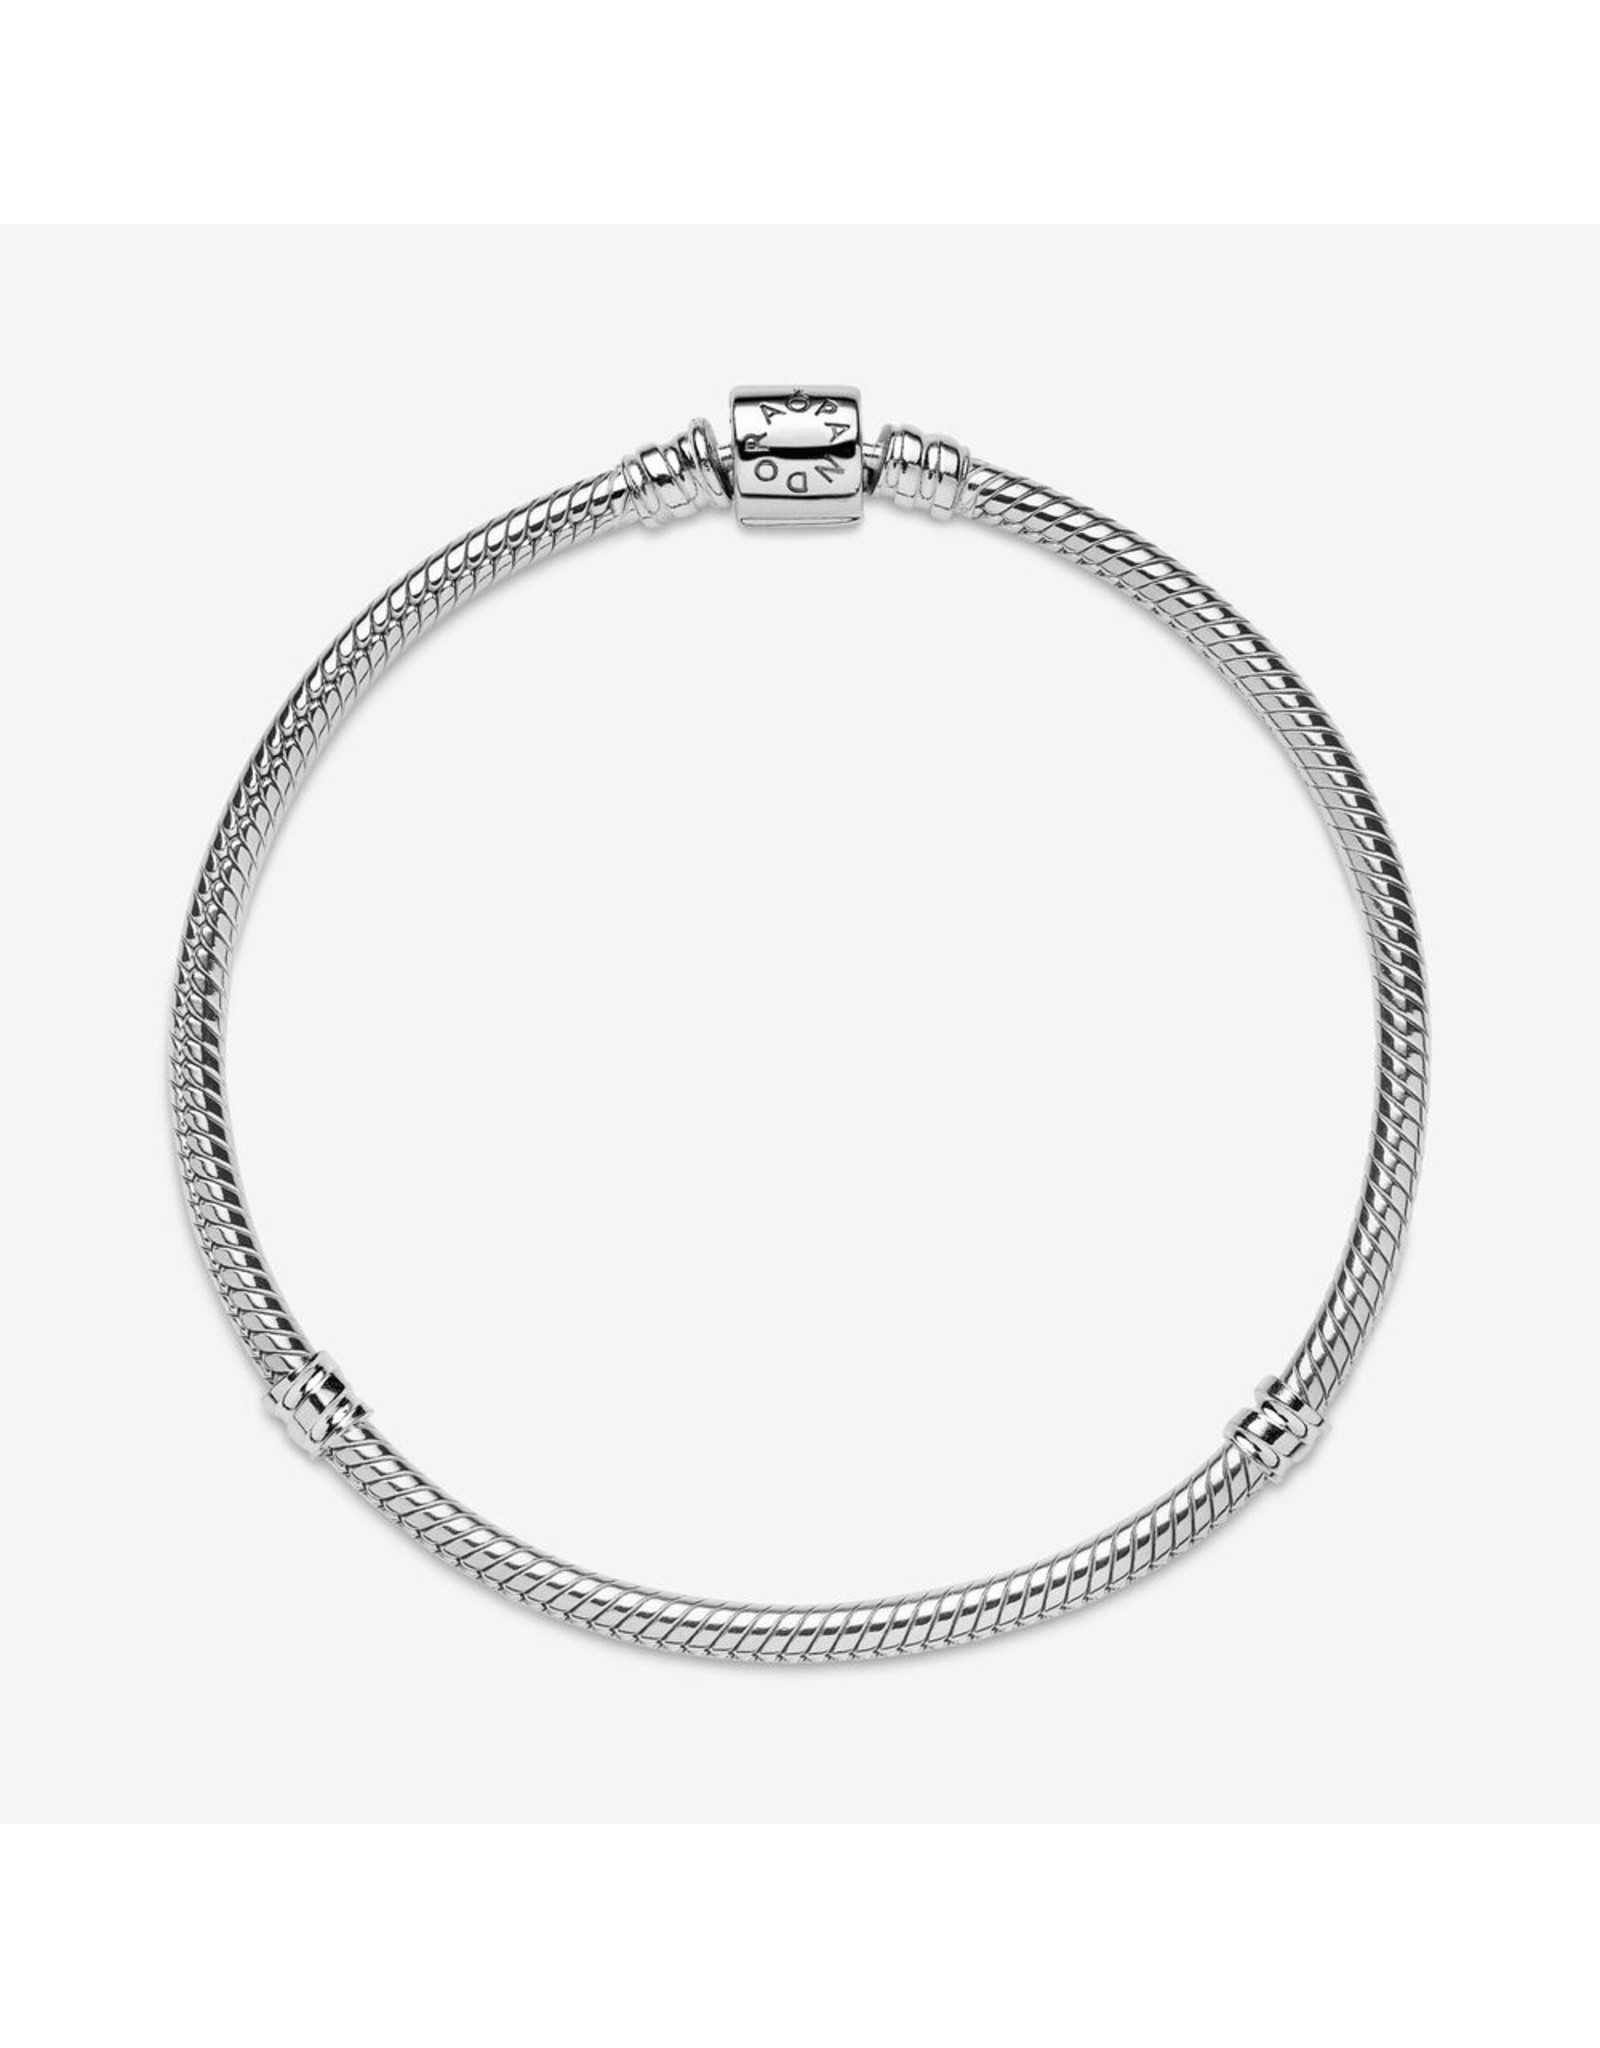 Pandora Pandora Moments Barrel Clasp Snake Chain Bracelet Sterling Silver